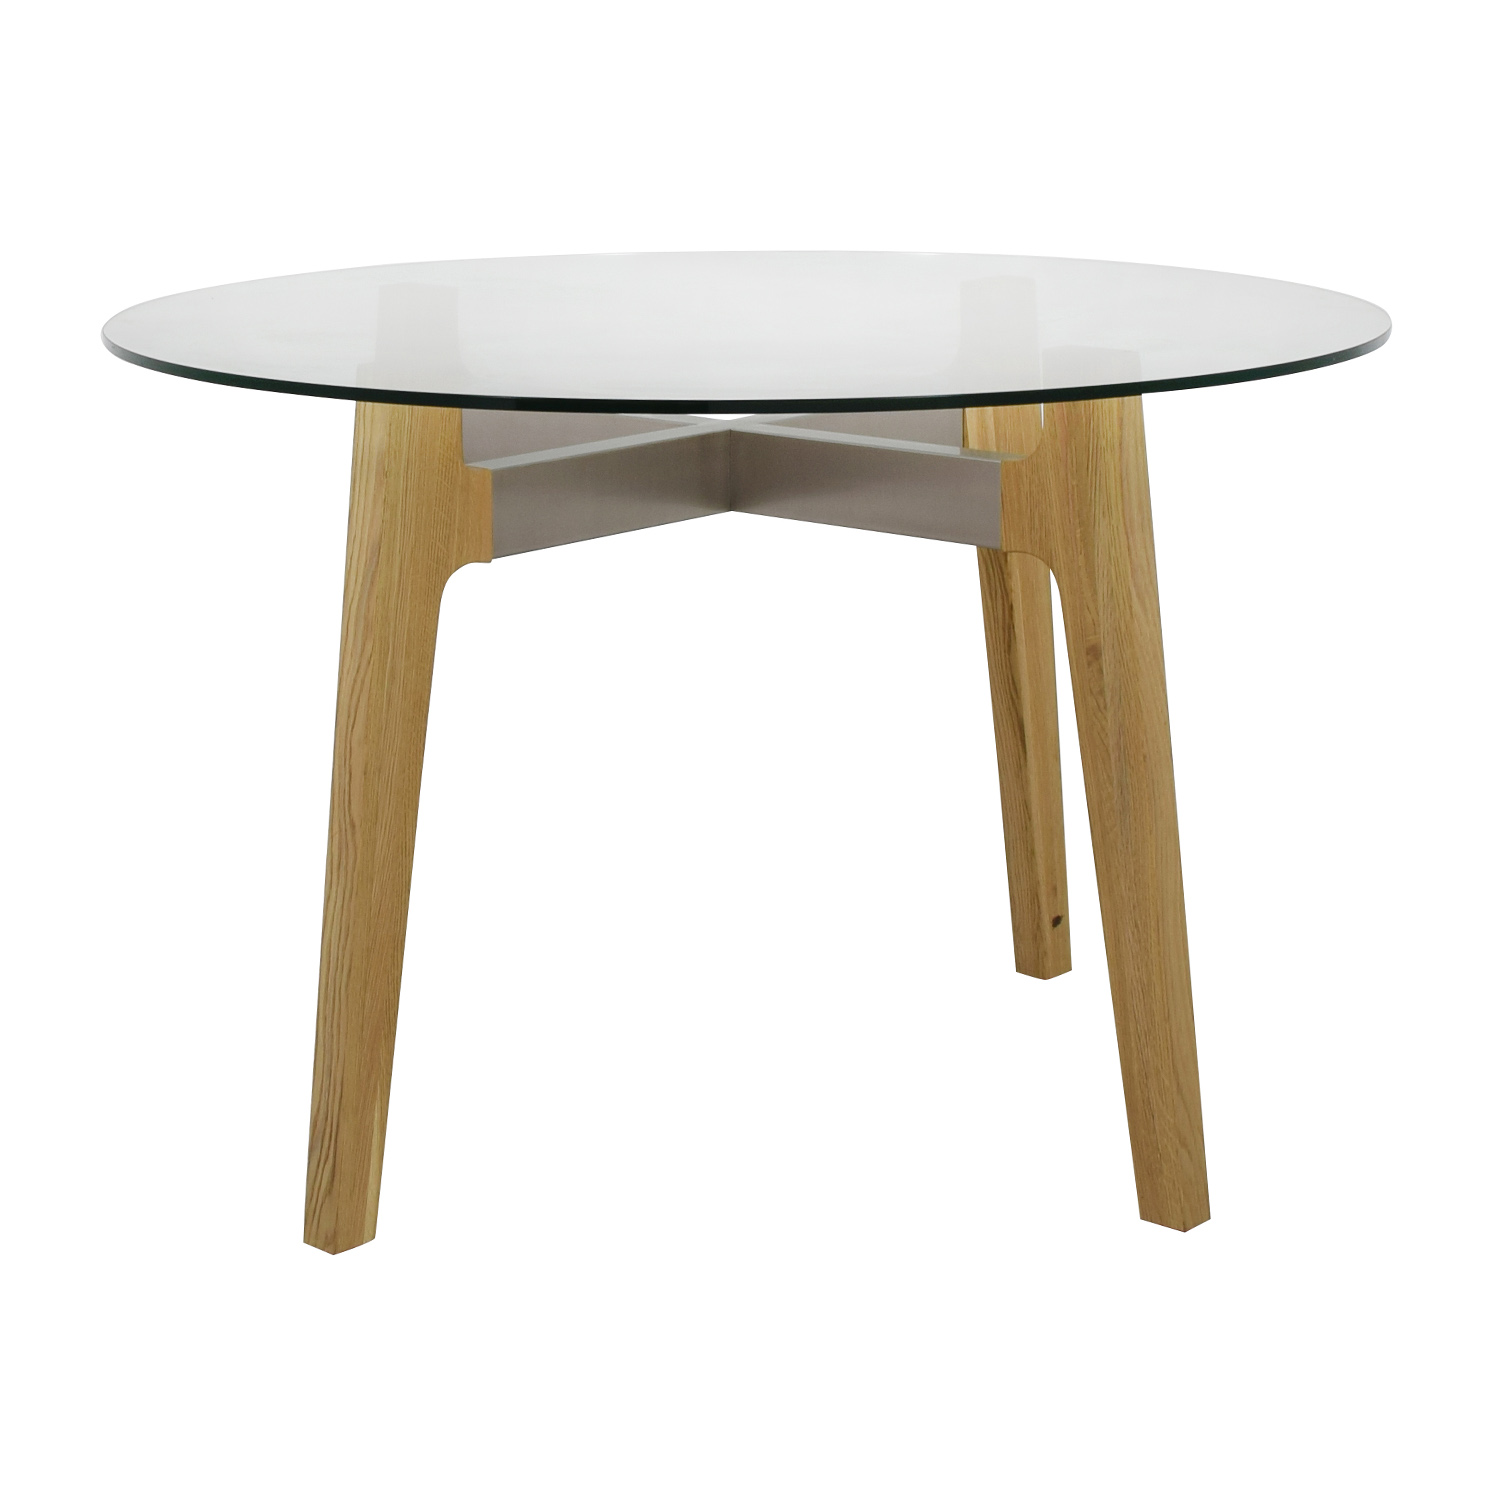 CB2 CB2 Round Brace Dining Table for sale